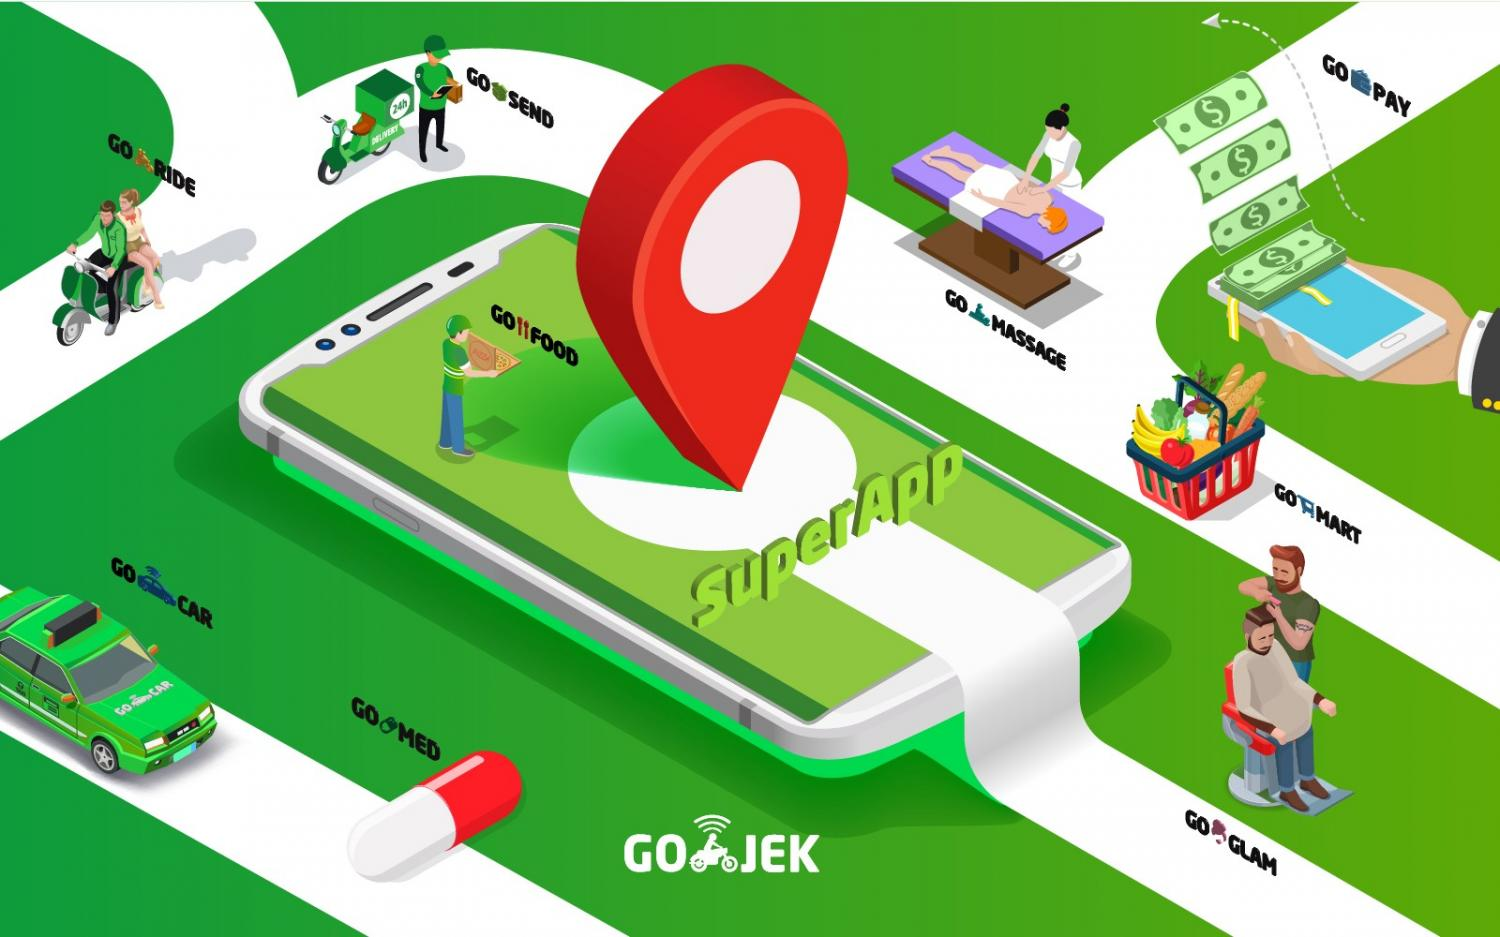 Grab and Gojek have diversified their services.